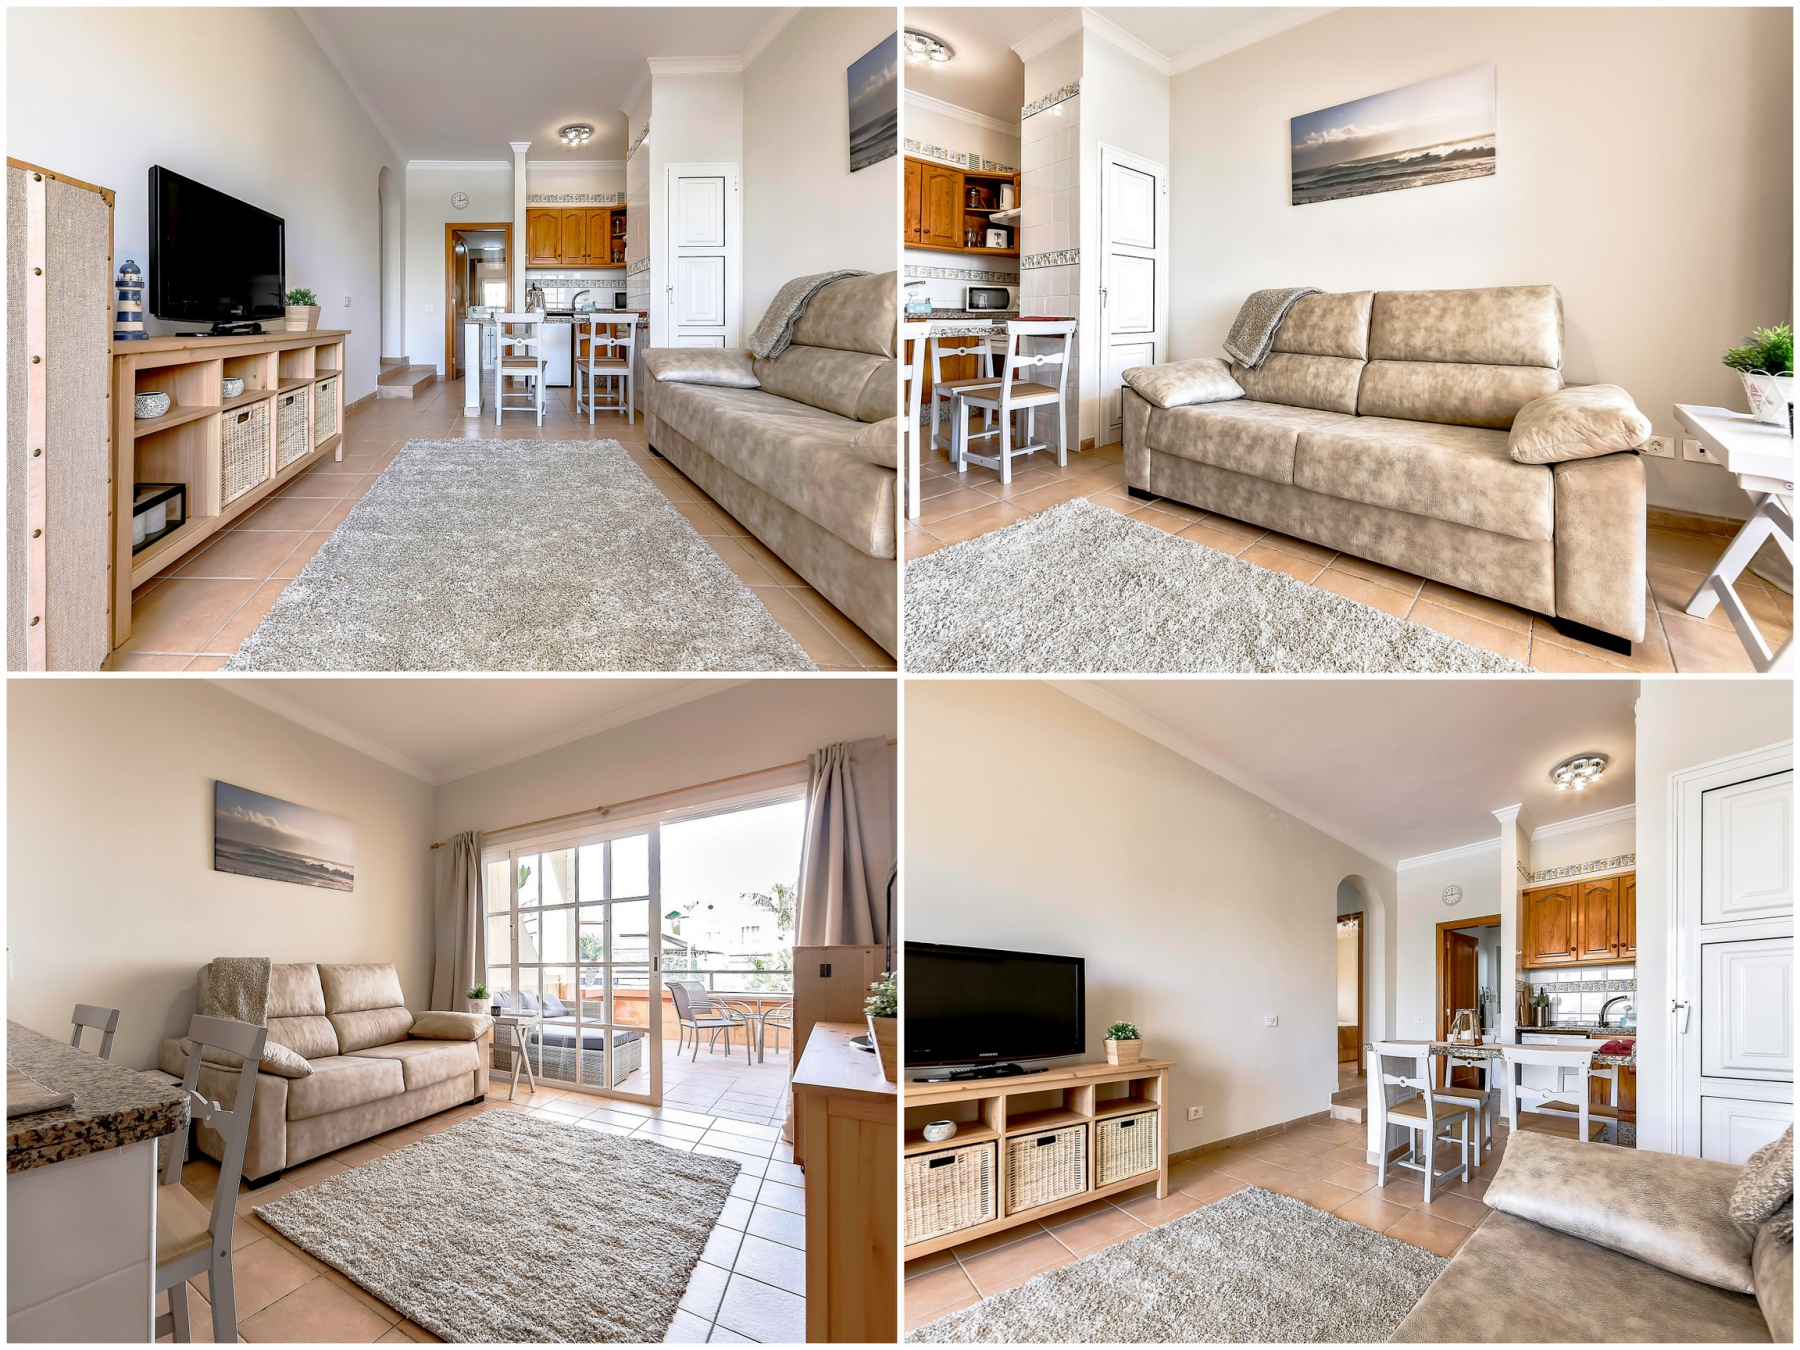 Properties for Sale in Tenerife, Canary Islands, Spain | SylkWayStar Real Estate. 1 bedroom apartment Yucca Park. Image-22618